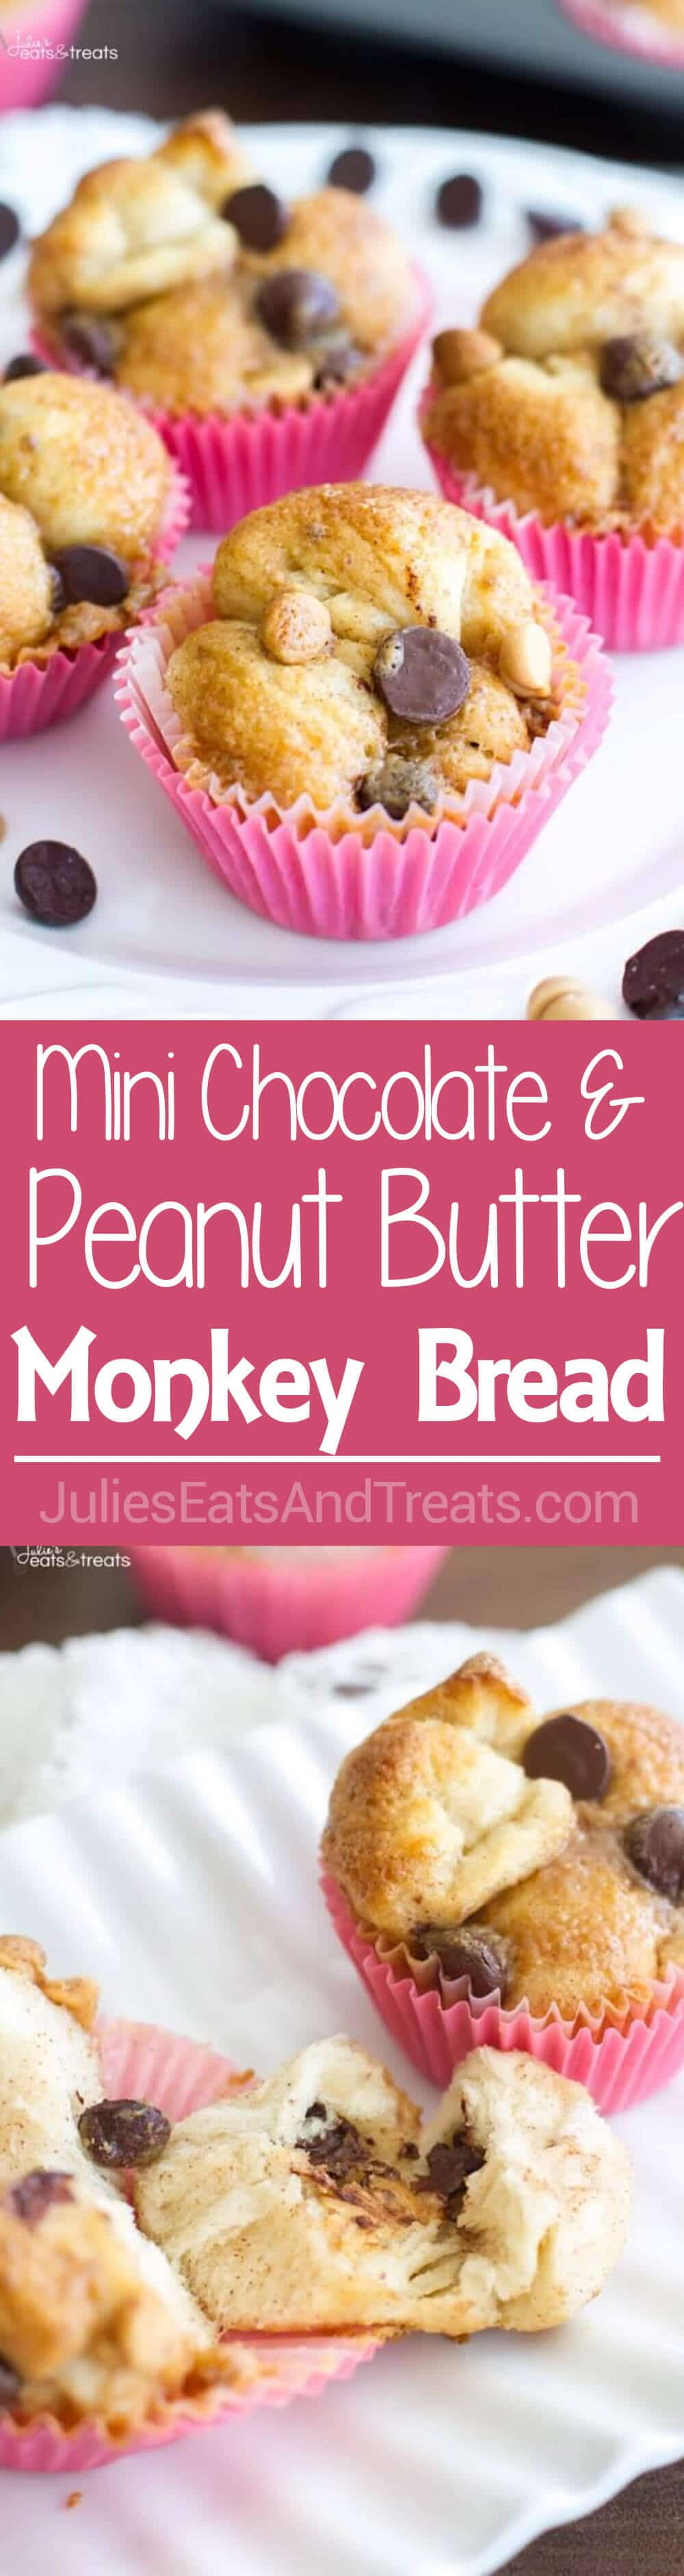 {Mini} Chocolate and Peanut Butter Monkey Bread Recipe ~ Quick and Easy Monkey Bread Recipe that uses Chocolate and Peanut Butter for a Fun Twist! A Perfect On-The-Go Breakfast!